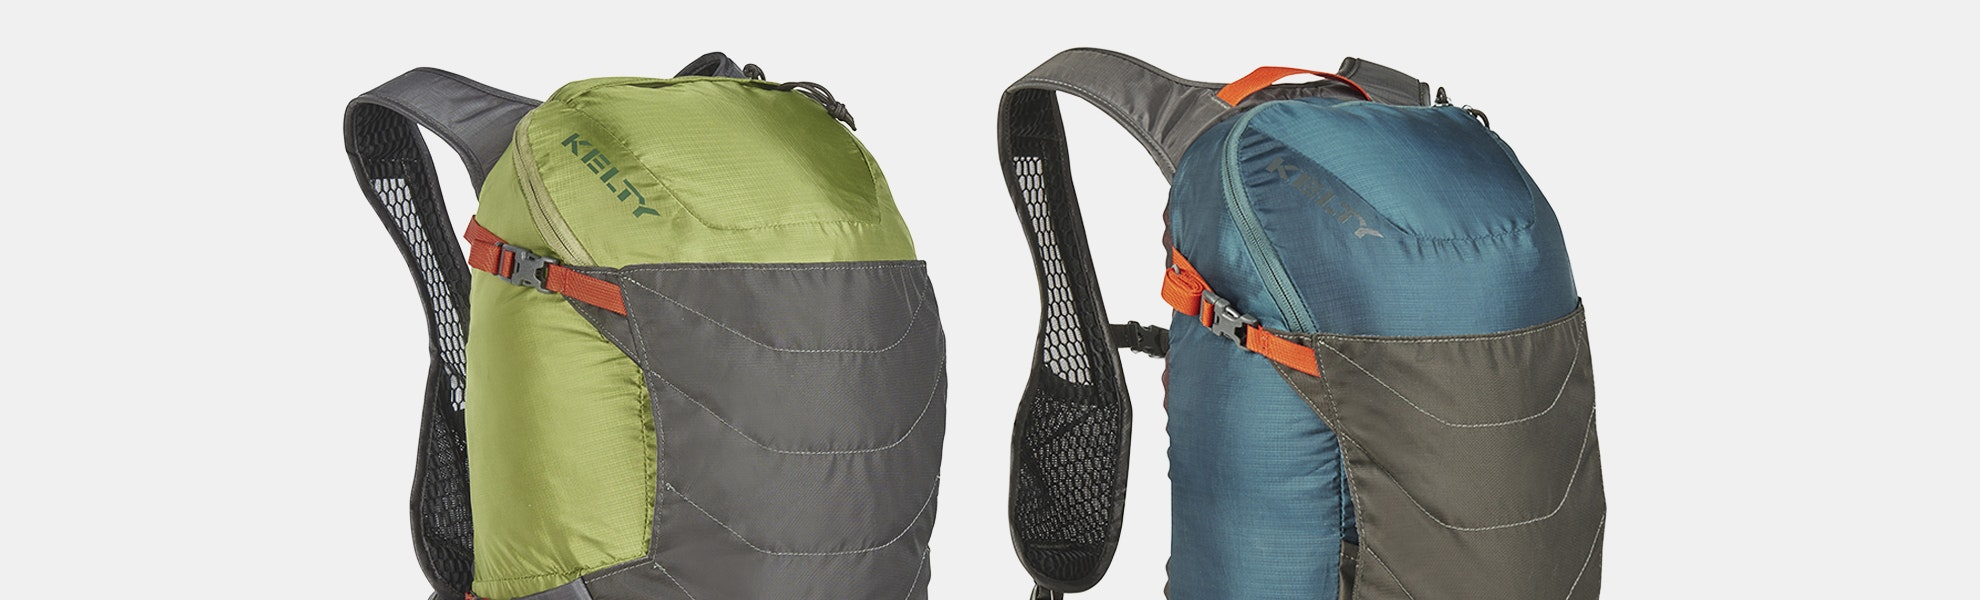 Kelty Riot 15 & 22 Backpacks